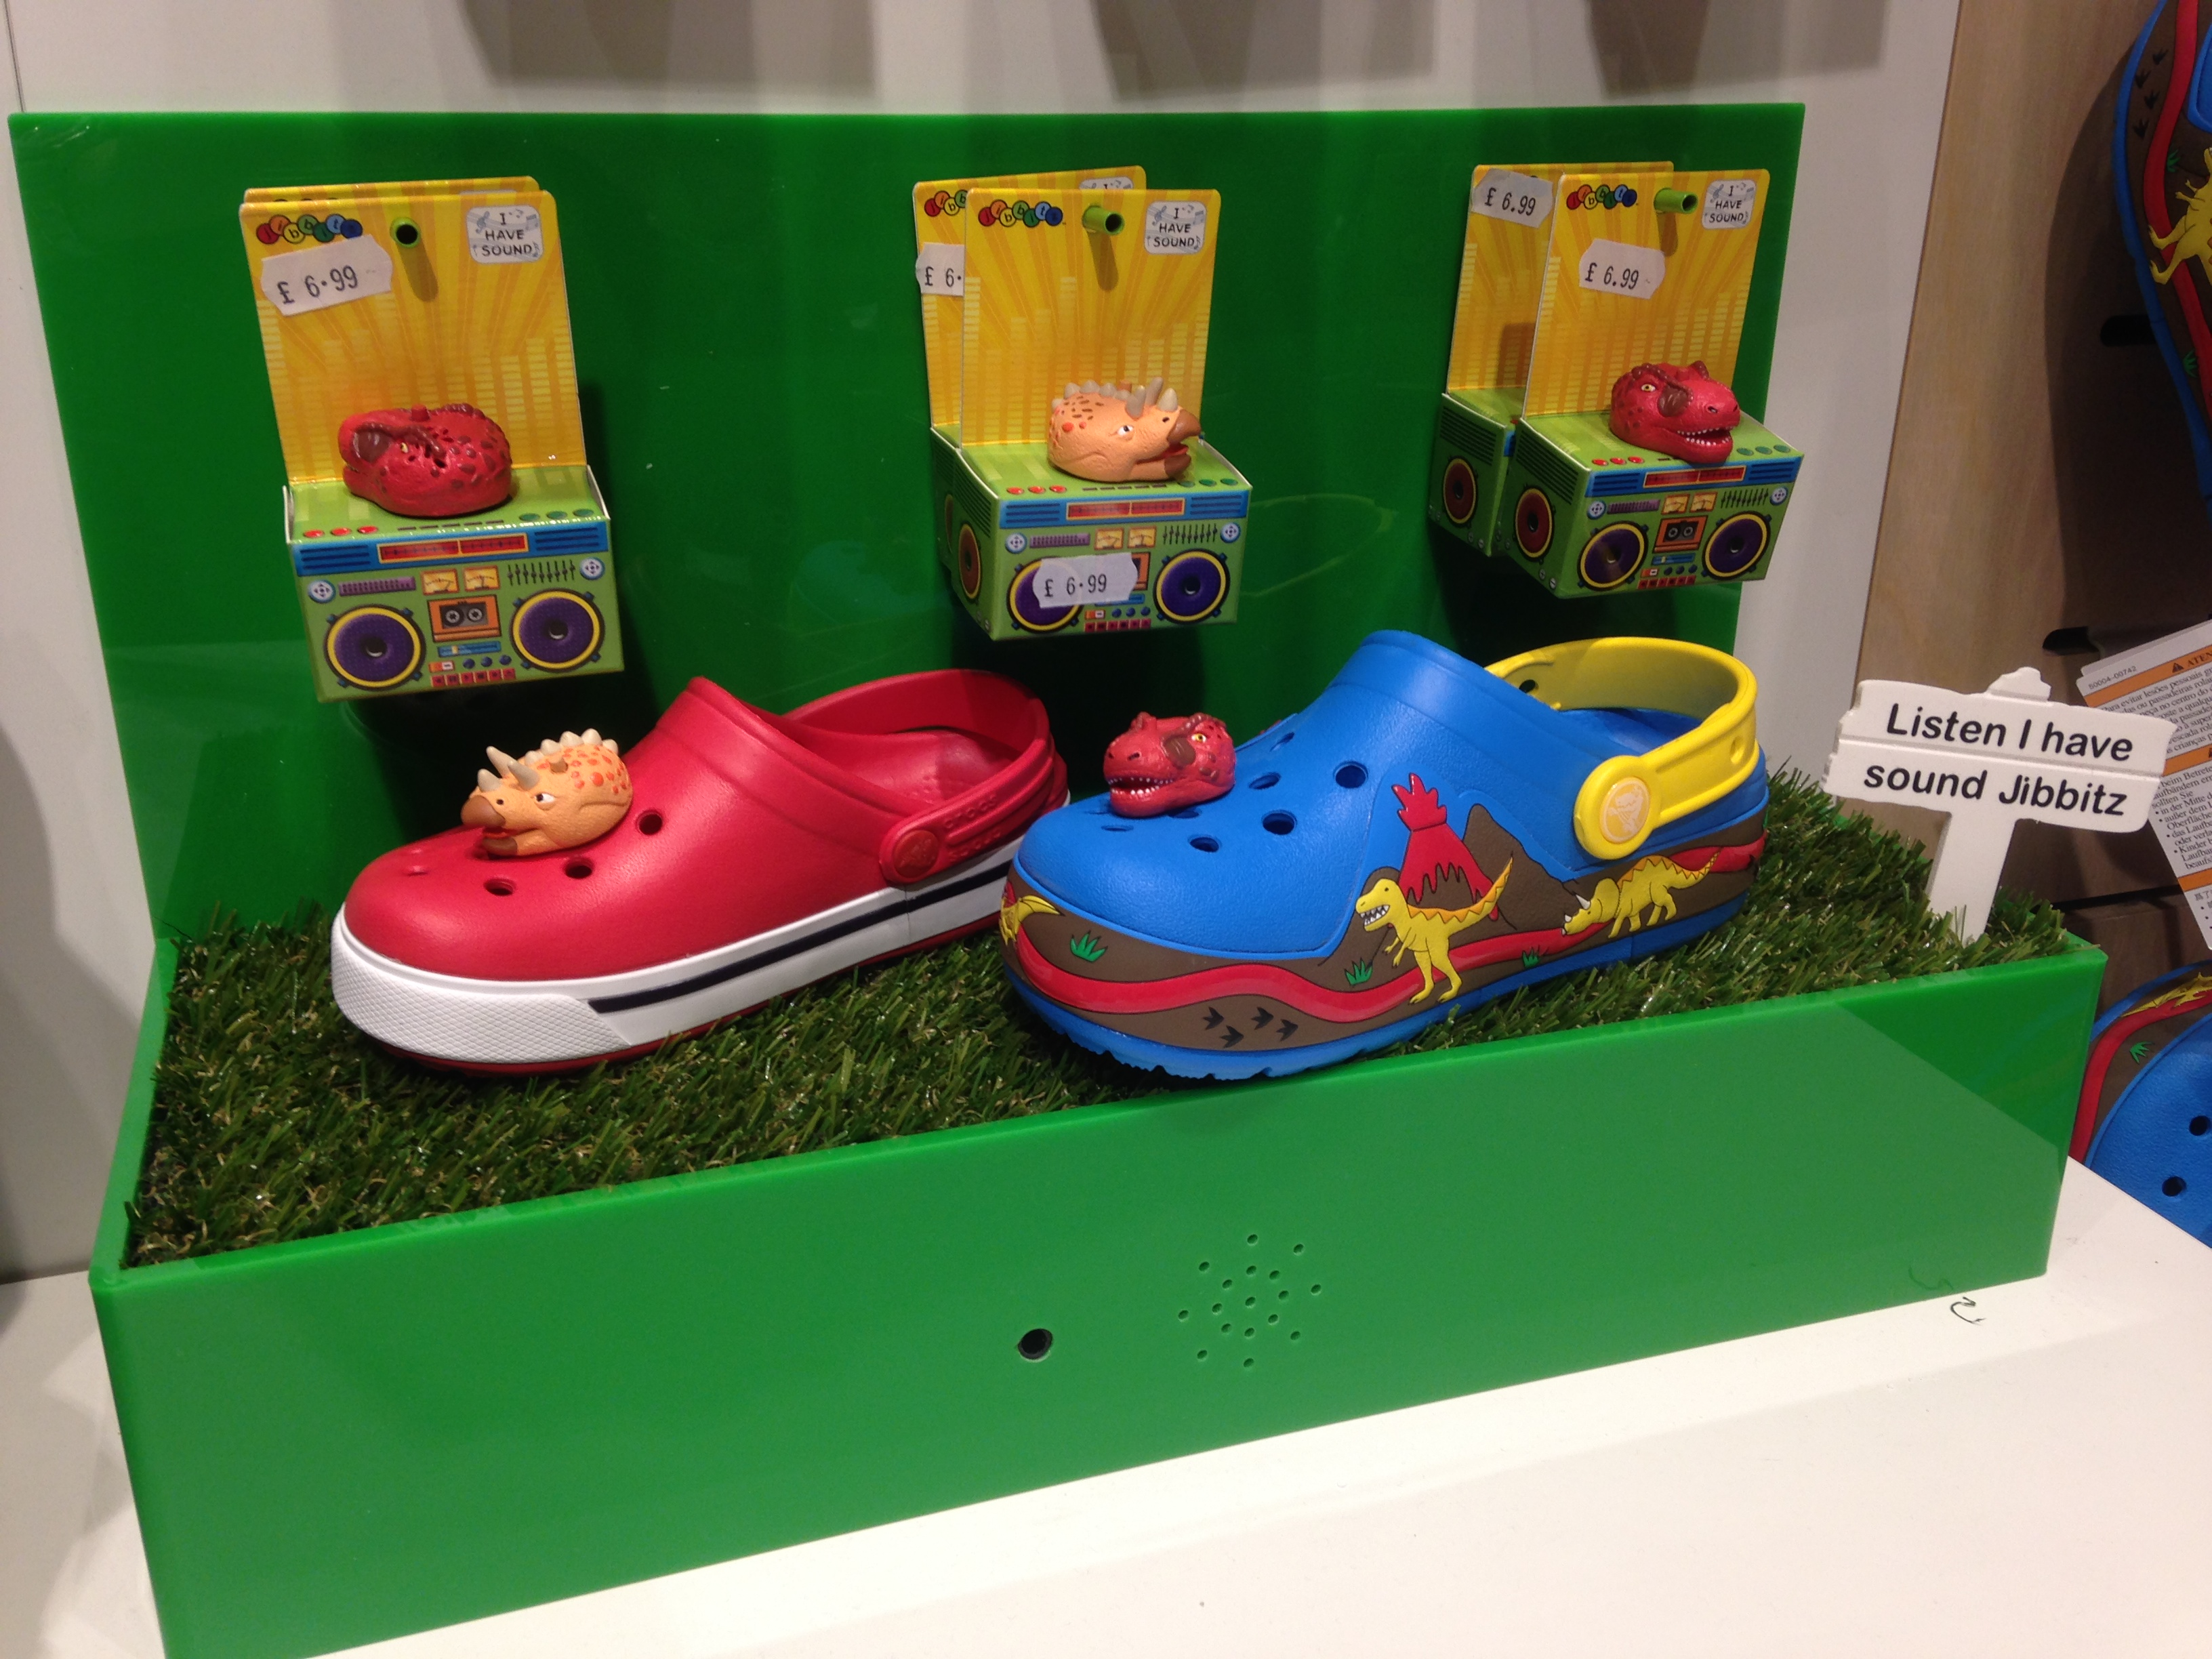 Crocs Motion Sensor With Sound Footwear Display